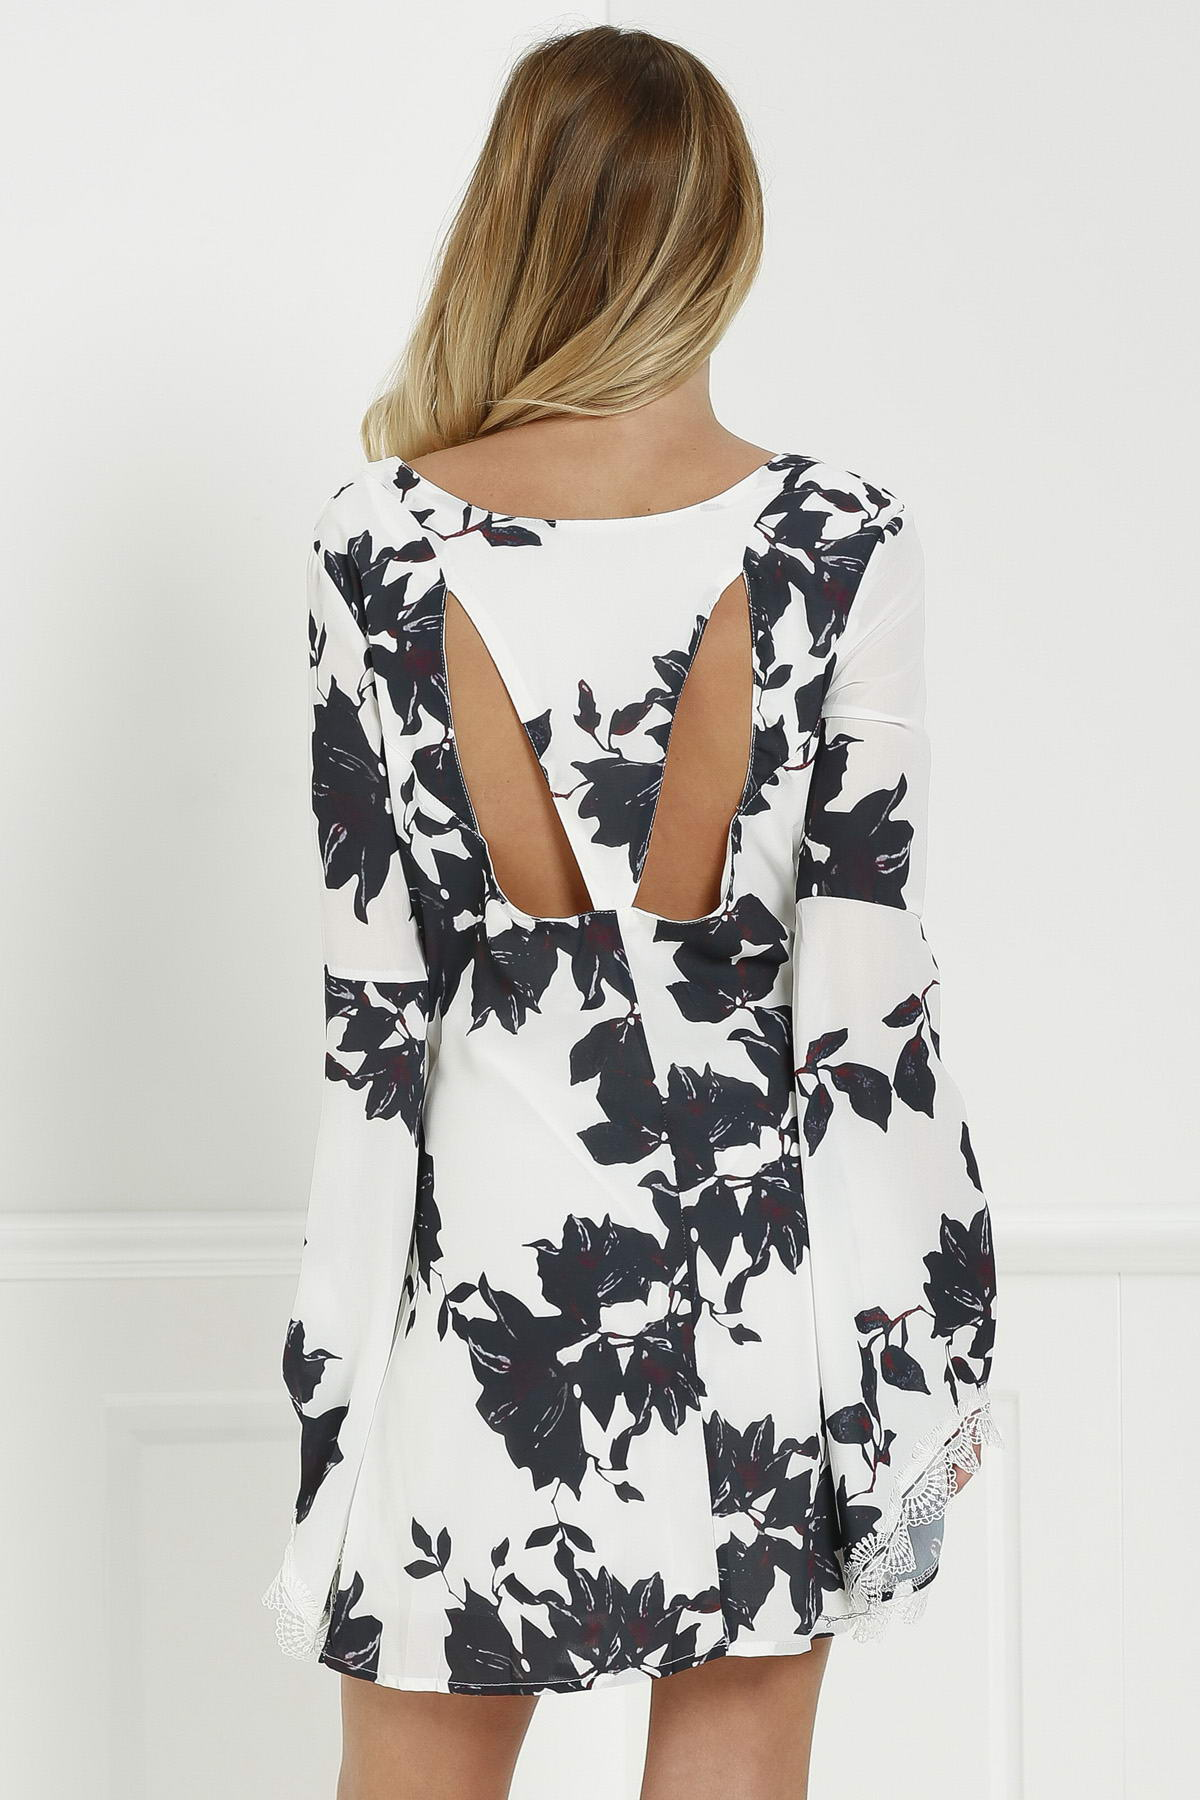 V Neck Long Sleeve Black Floral Cut Out Dress